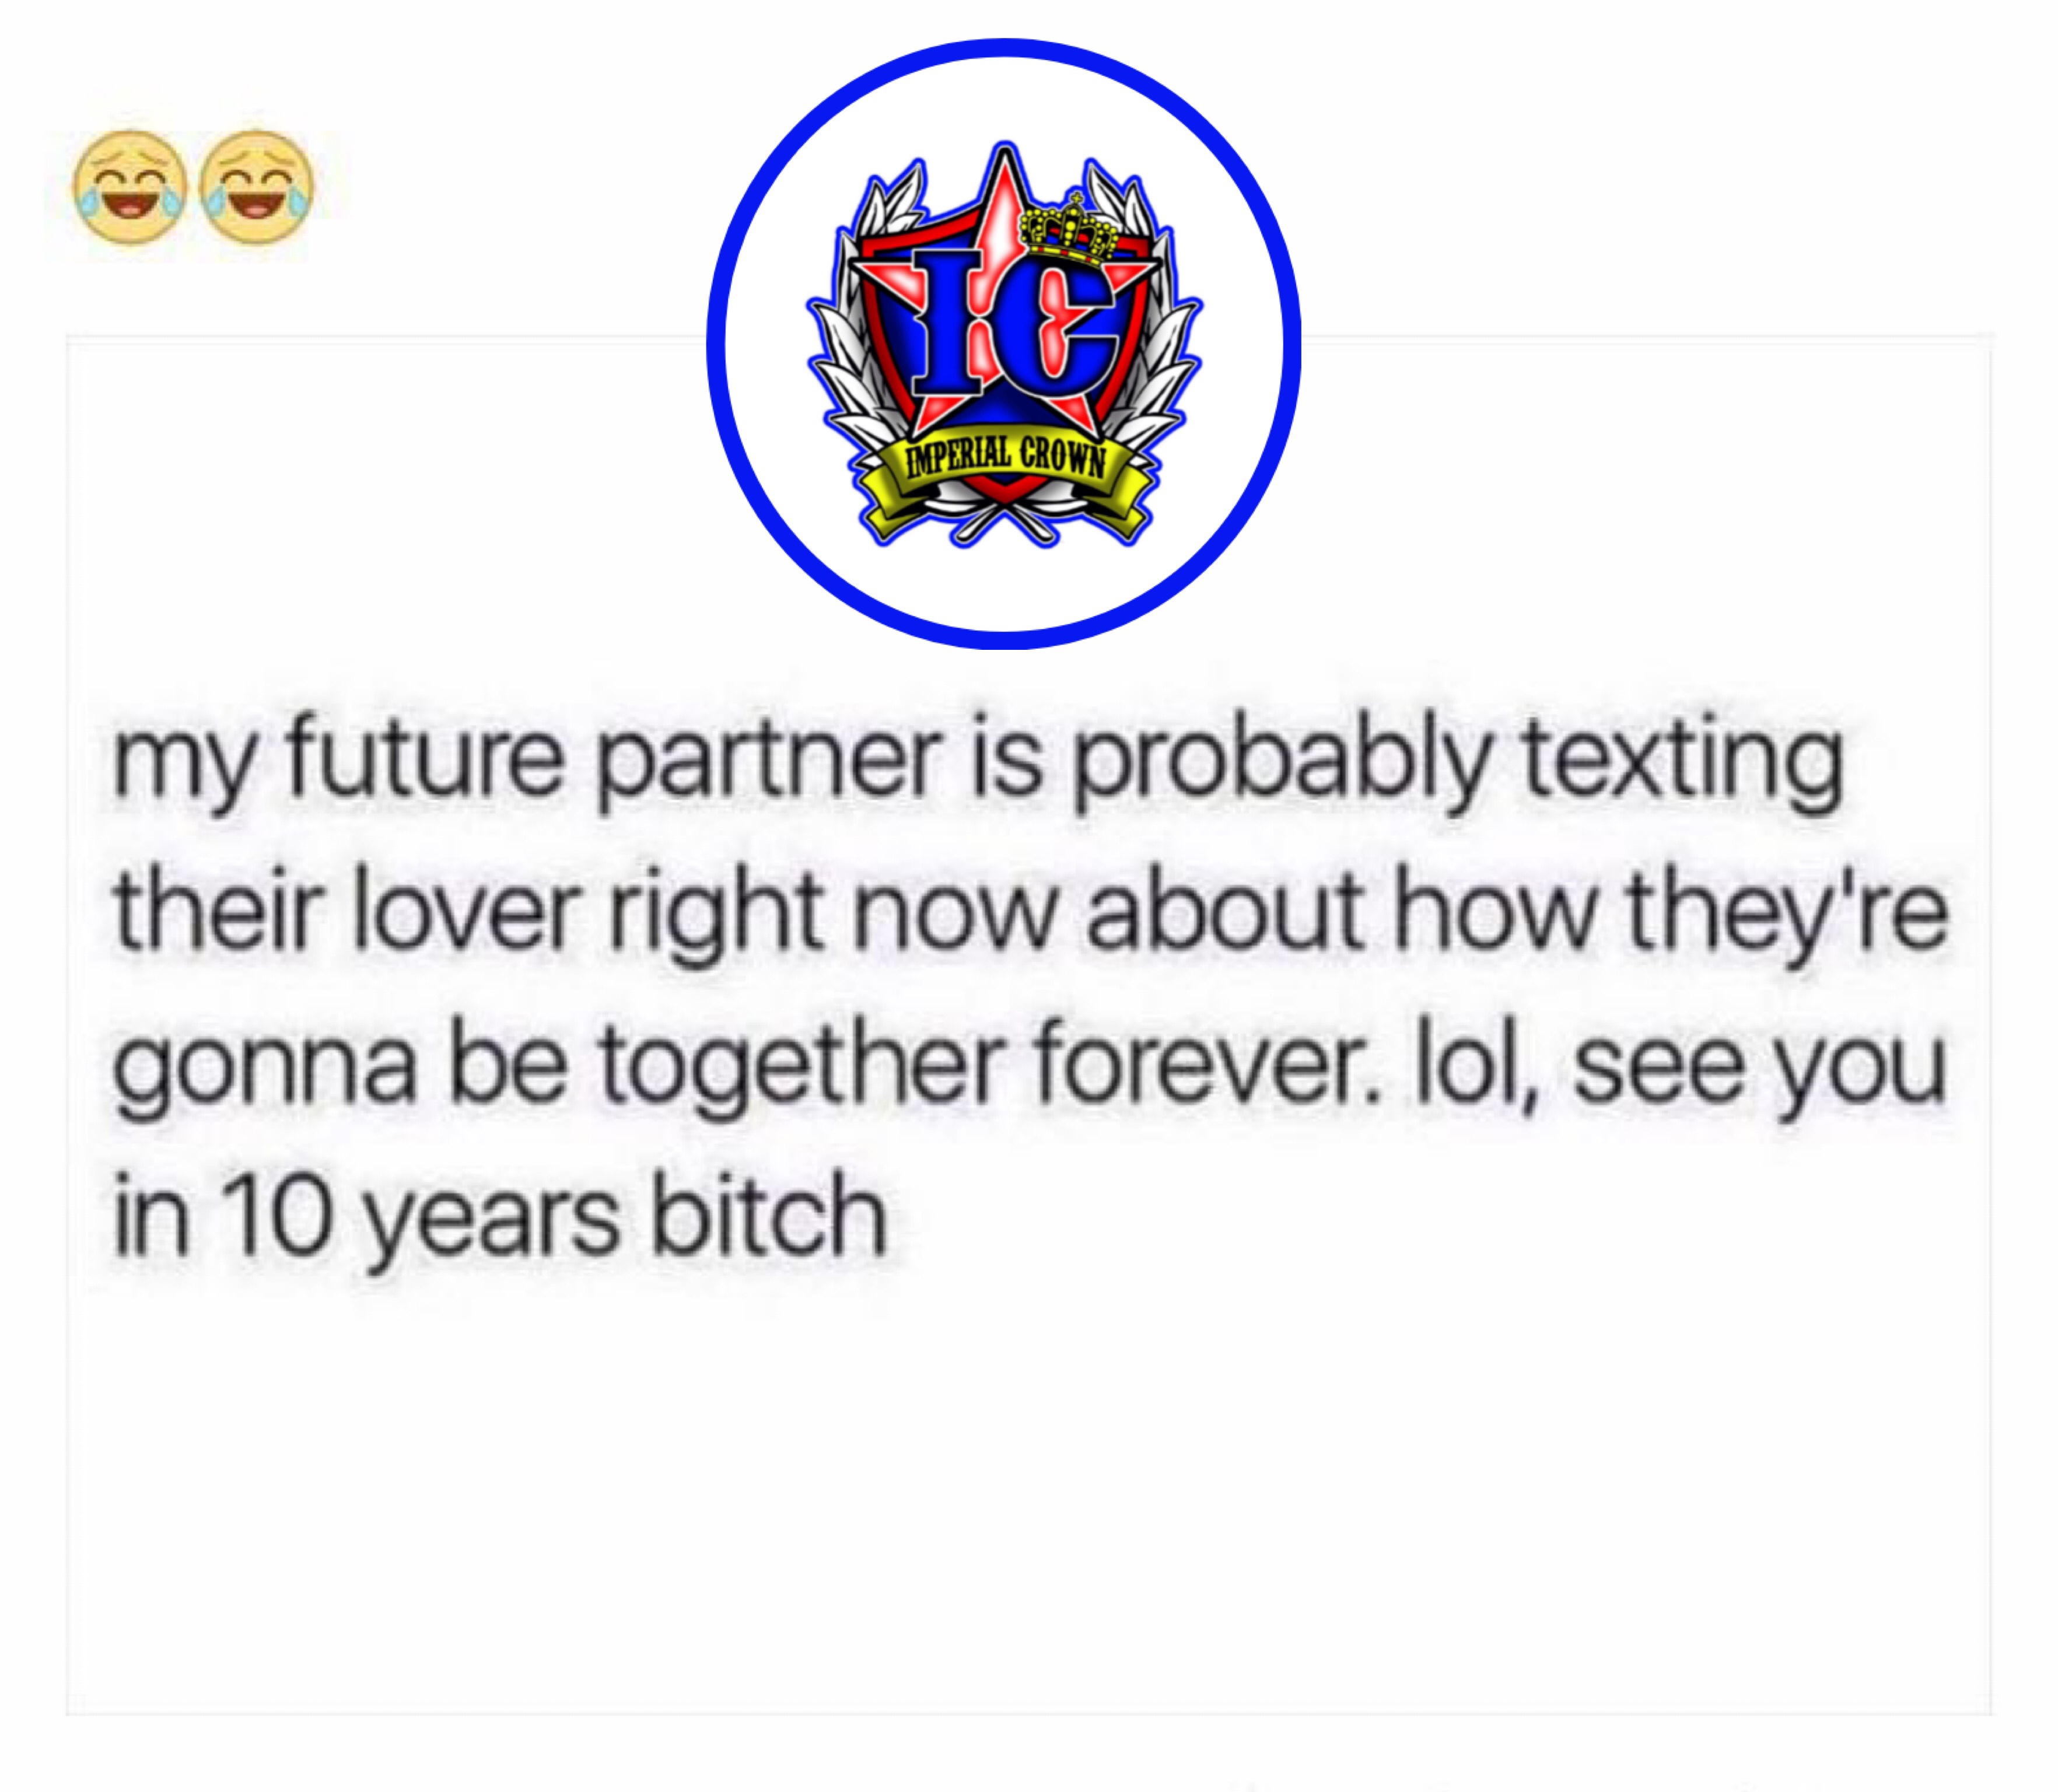 My future partner is probably texting their lover right now